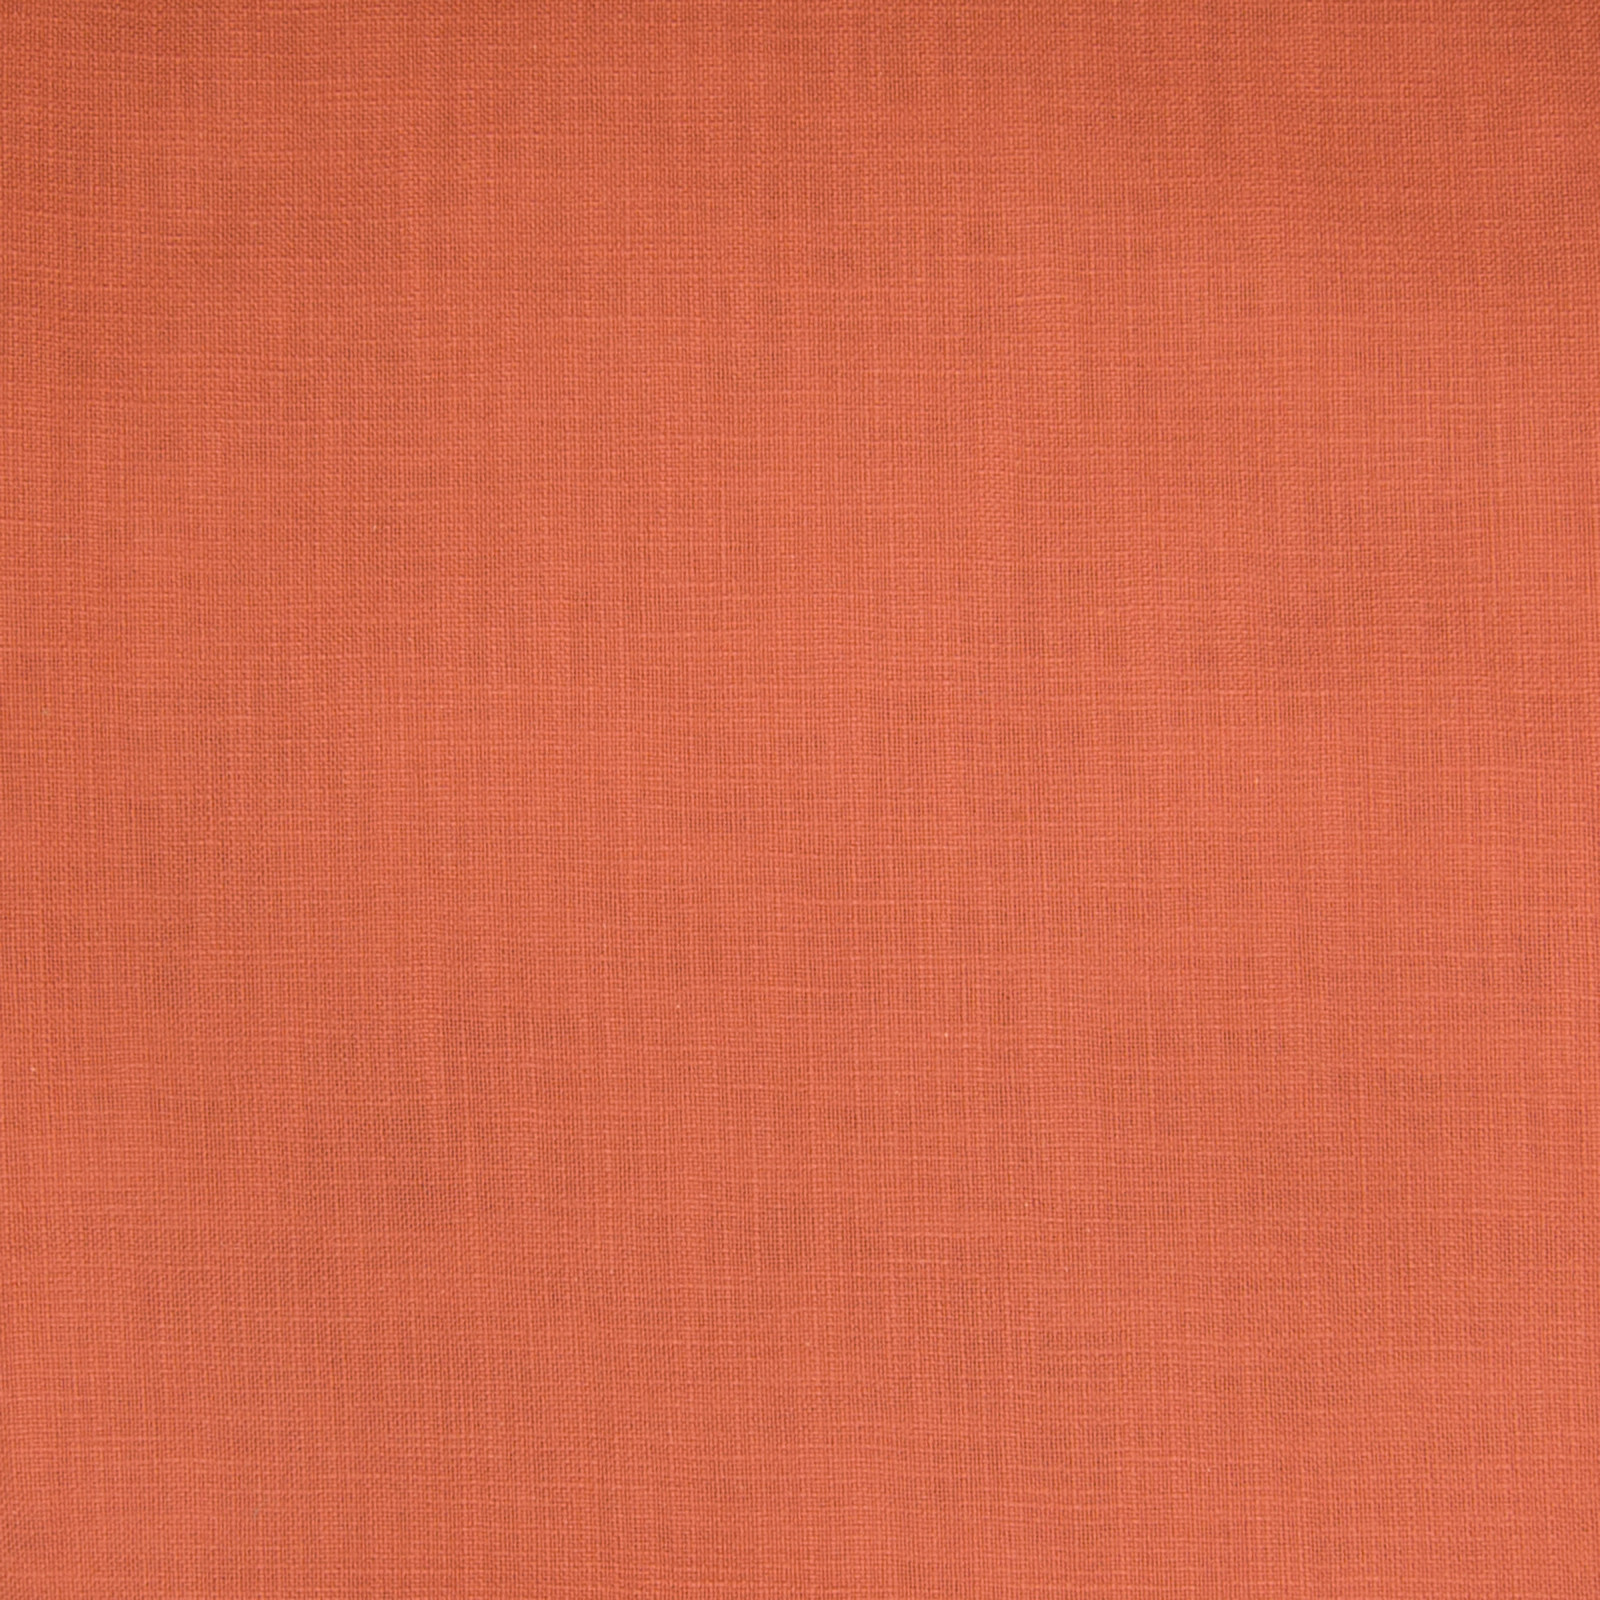 Salmon Pink And Red Solid Cotton Upholstery Fabric